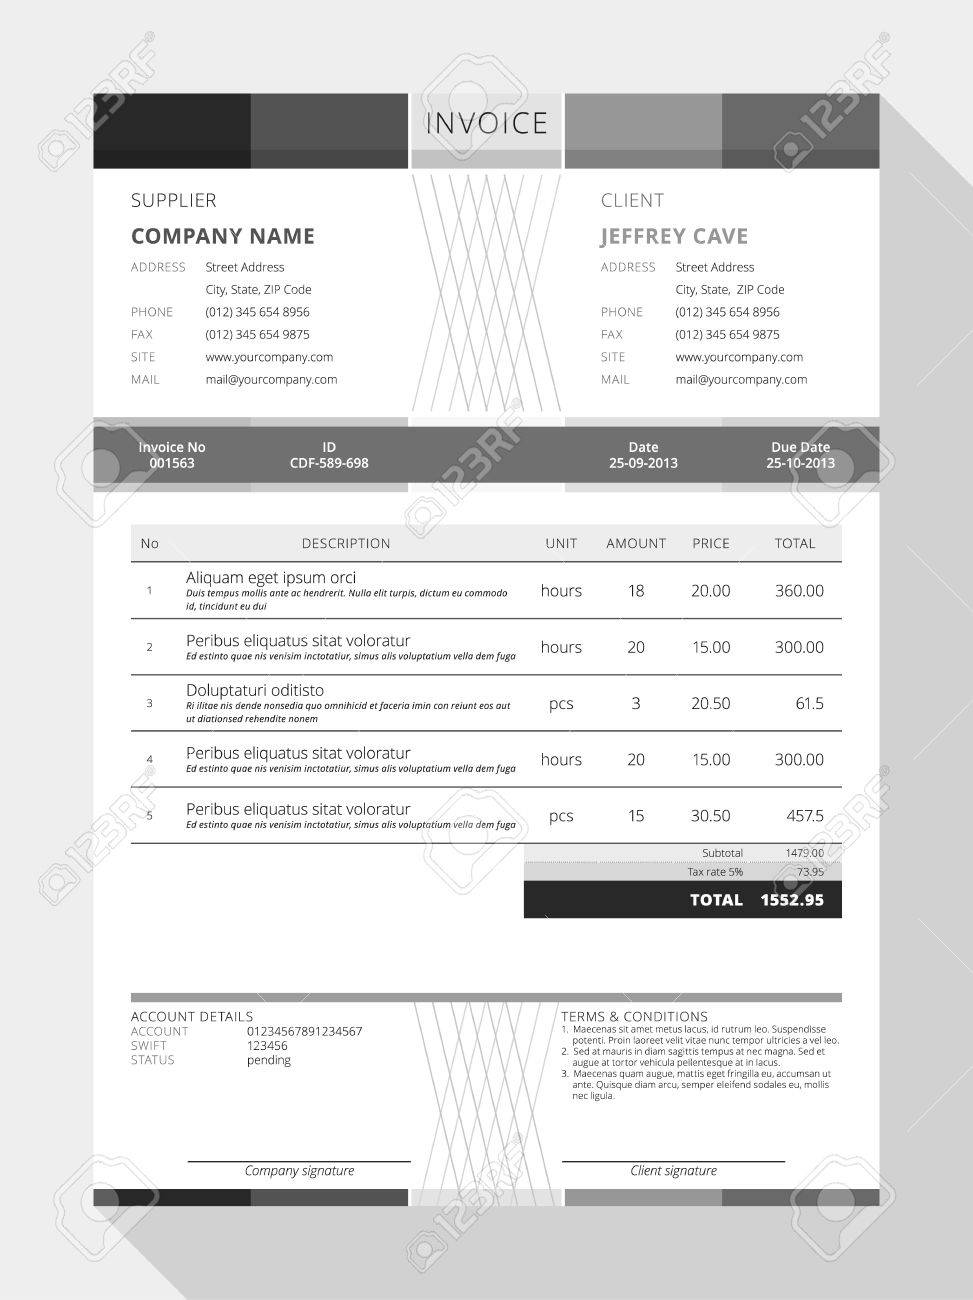 Aldiablosus  Fascinating Design An Invoice  Professional Graphic Design Invoice  With Handsome Vector Customizable Invoice Form Template Design Vector   Design An Invoice With Cute Ongc Invoice Tracking Also Fob On An Invoice In Addition Sample Of A Commercial Invoice And Invoice Sample Xls As Well As Invoice Professional Additionally Free Invoices Download From Happytomco With Aldiablosus  Handsome Design An Invoice  Professional Graphic Design Invoice  With Cute Vector Customizable Invoice Form Template Design Vector   Design An Invoice And Fascinating Ongc Invoice Tracking Also Fob On An Invoice In Addition Sample Of A Commercial Invoice From Happytomco